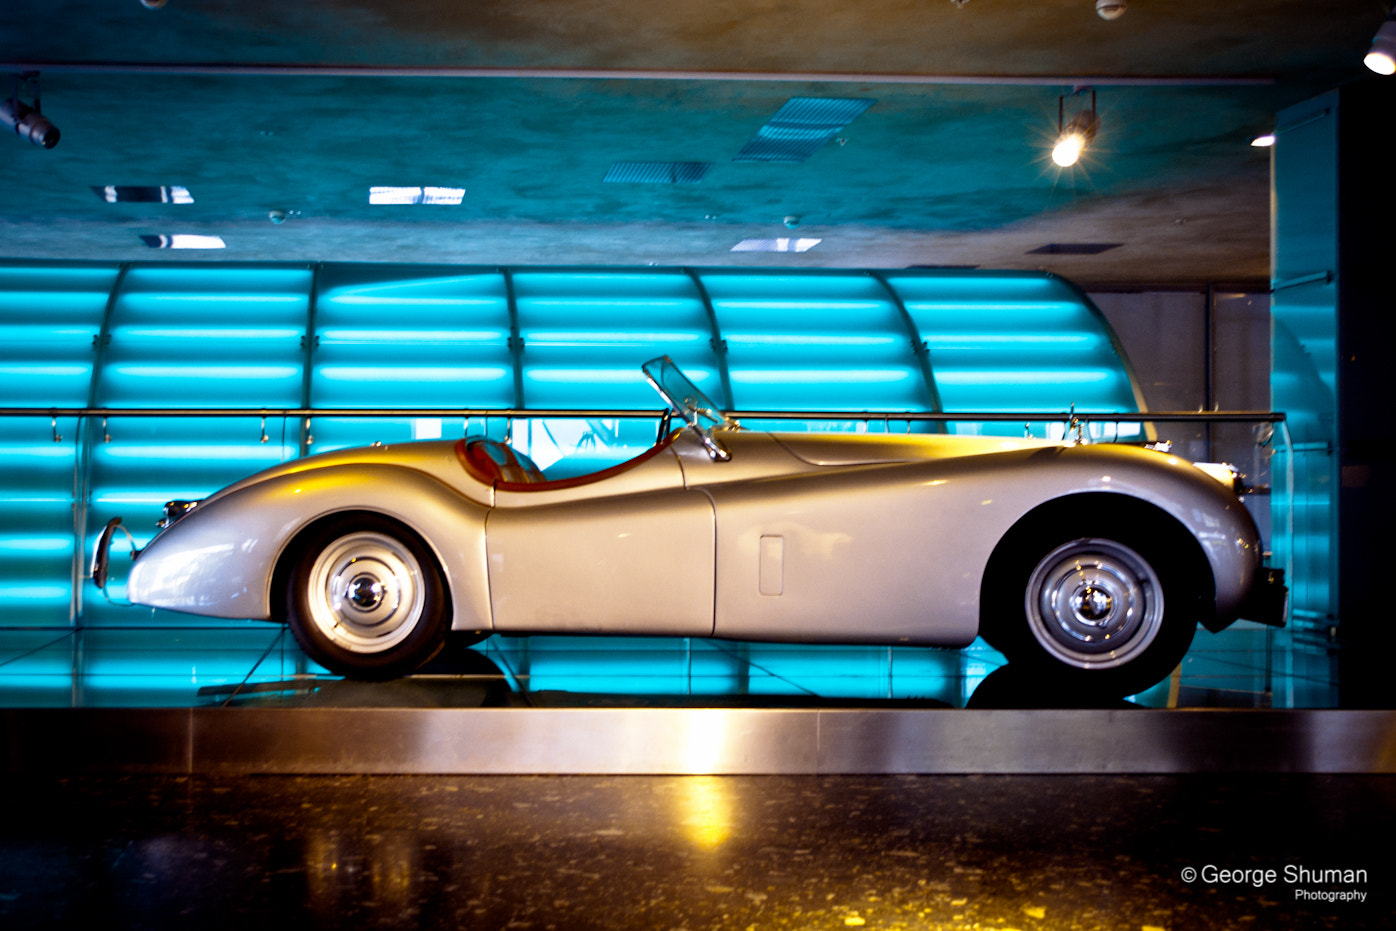 Photograph Retro Auto by George Shuman on 500px